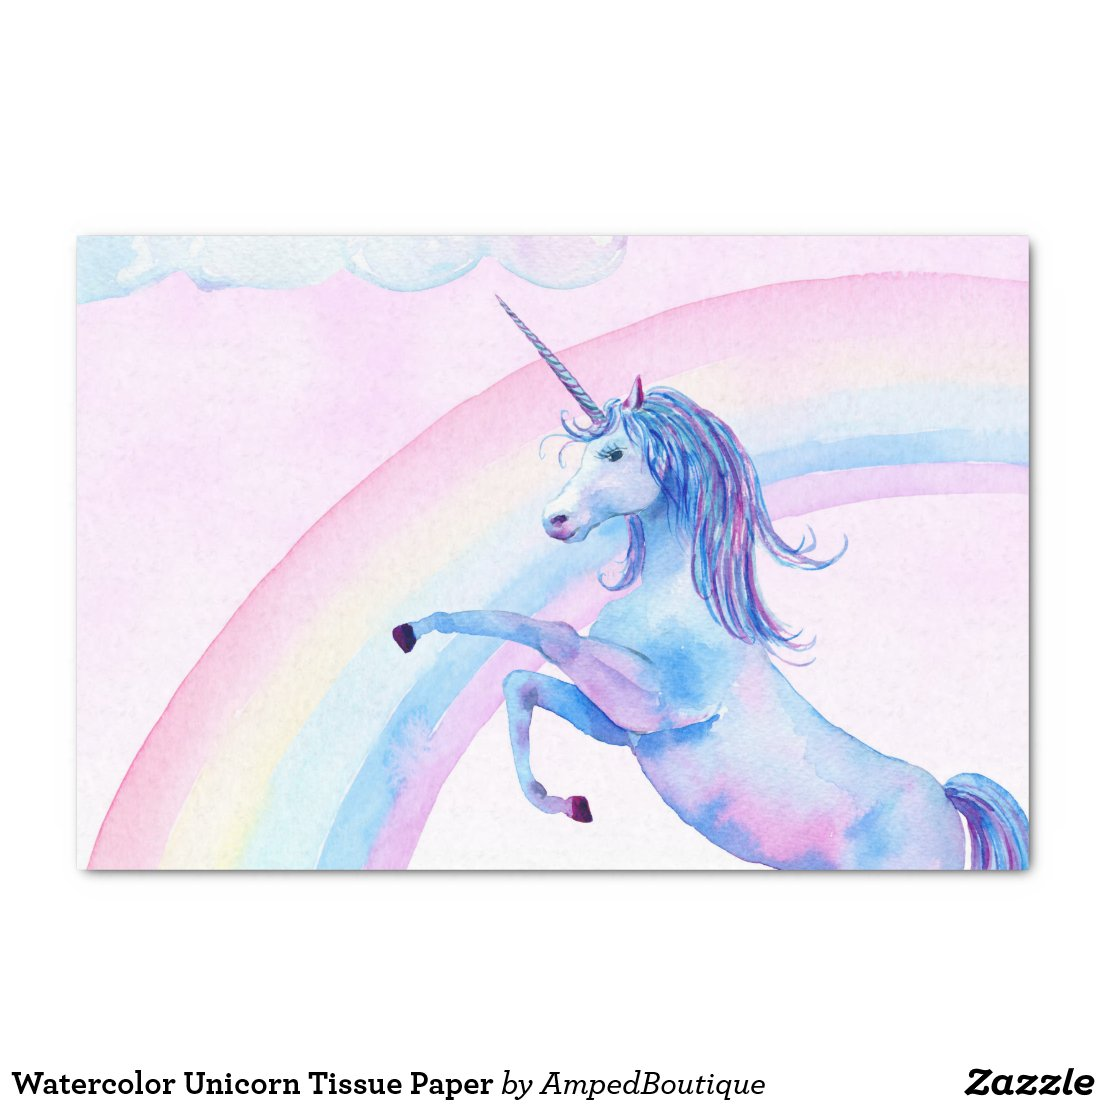 Watercolor Unicorn Tissue Paper